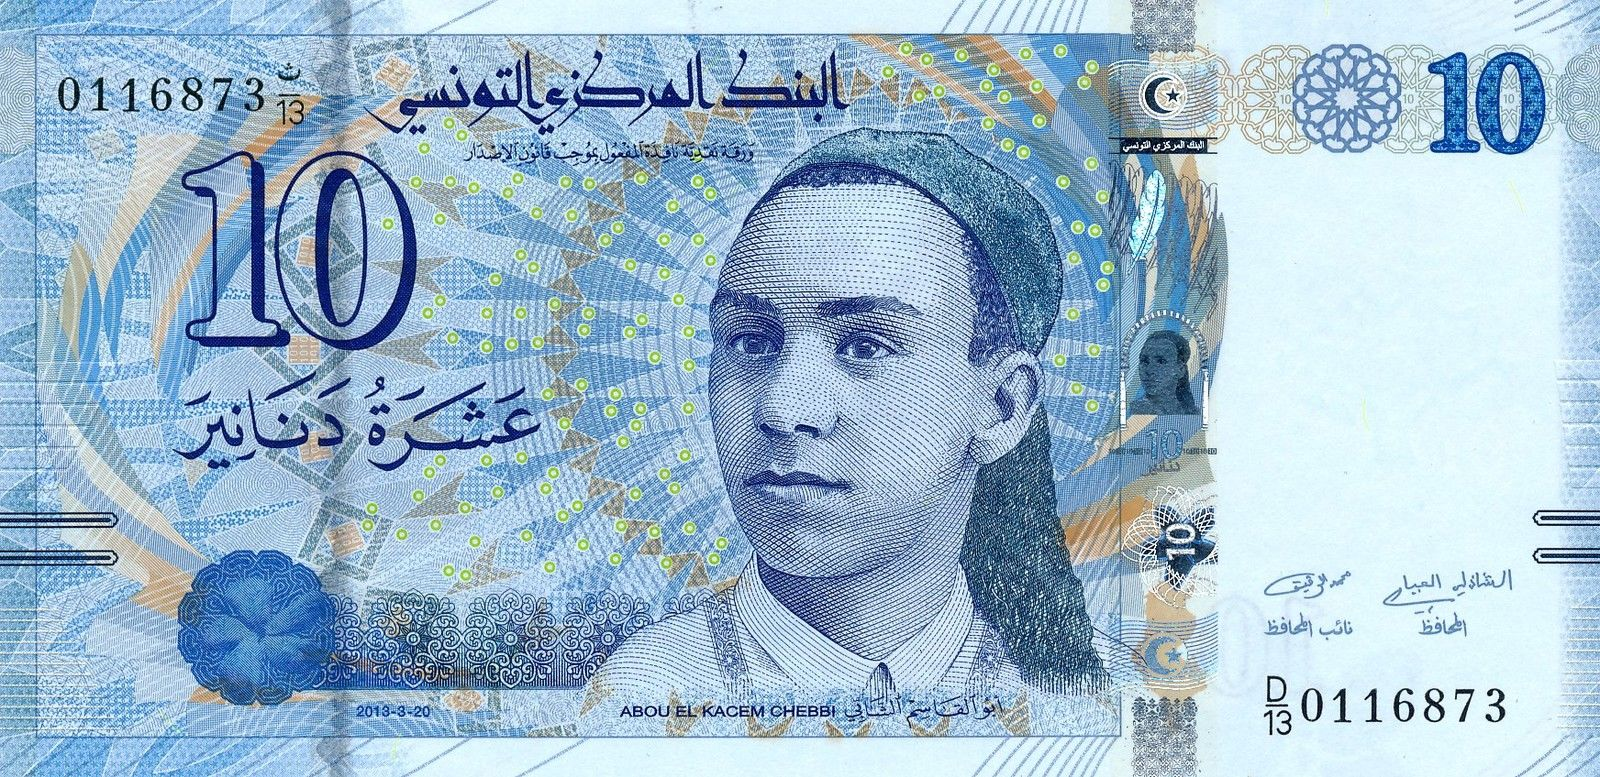 Tunisia 10 Dinars Banknote 2013 Aboul Qacem Echebbi World